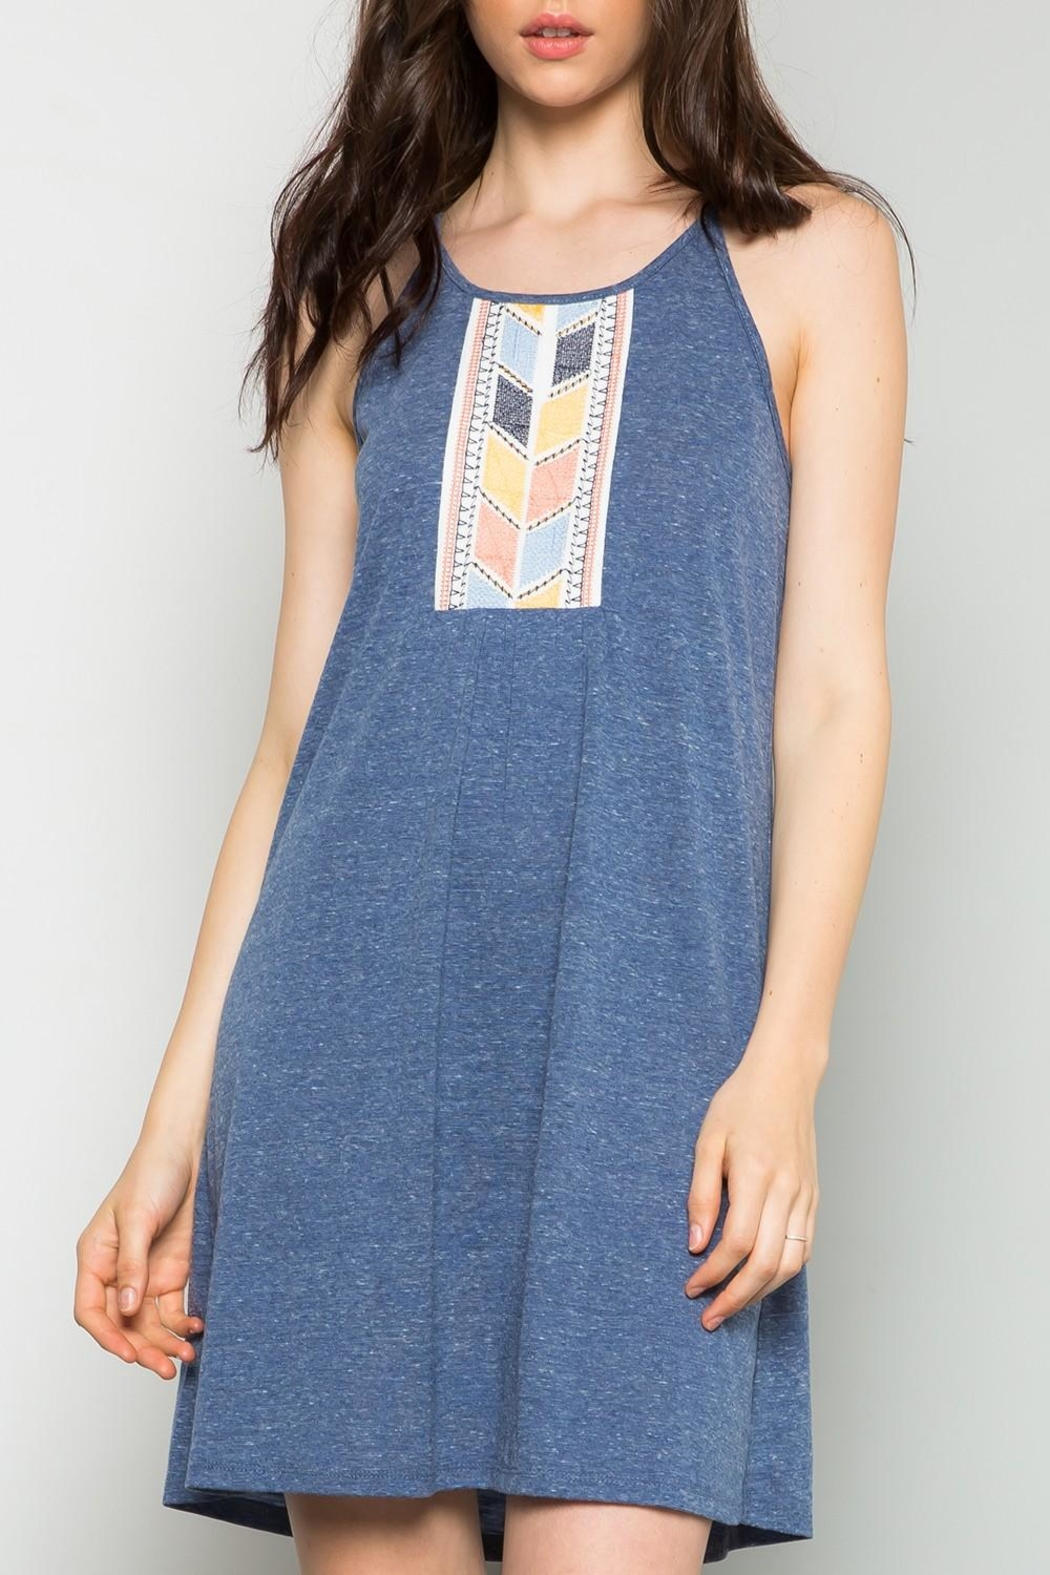 Thml Embrodiered Knit Dress - Main Image